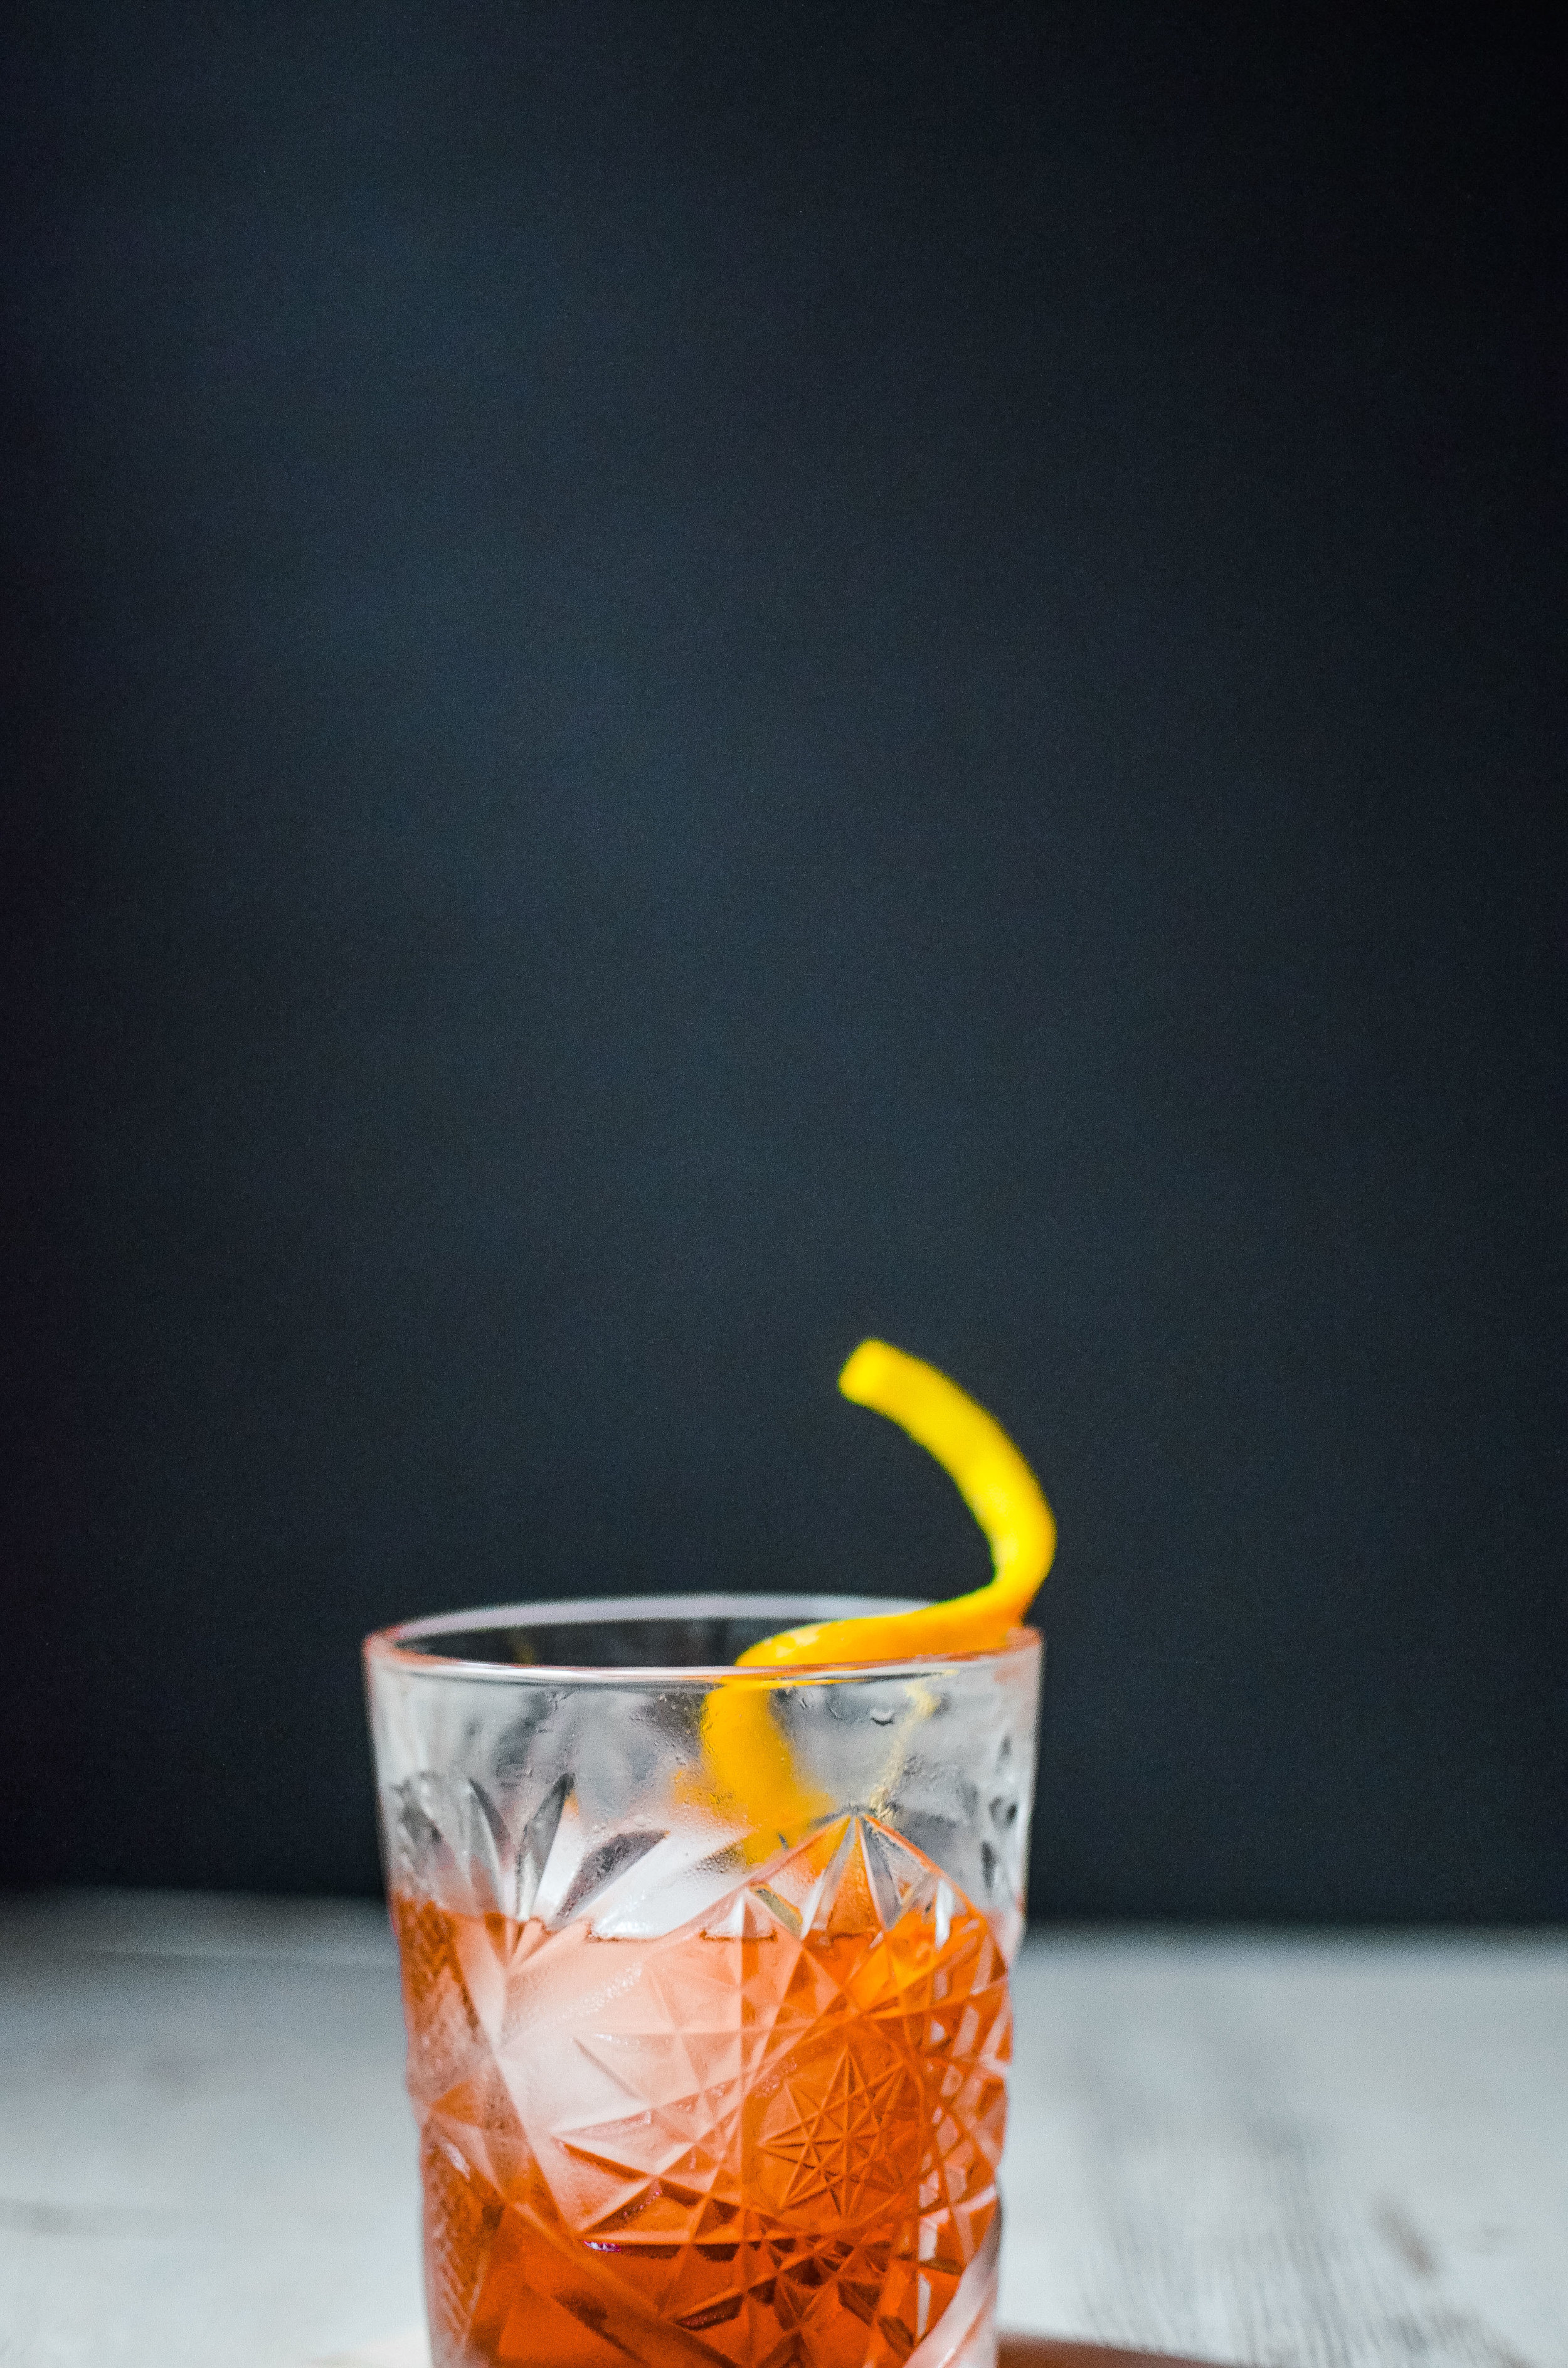 Wendling_Boyd_Negroni_Old_Fashioned_Cocktail_Bespoke.jpg